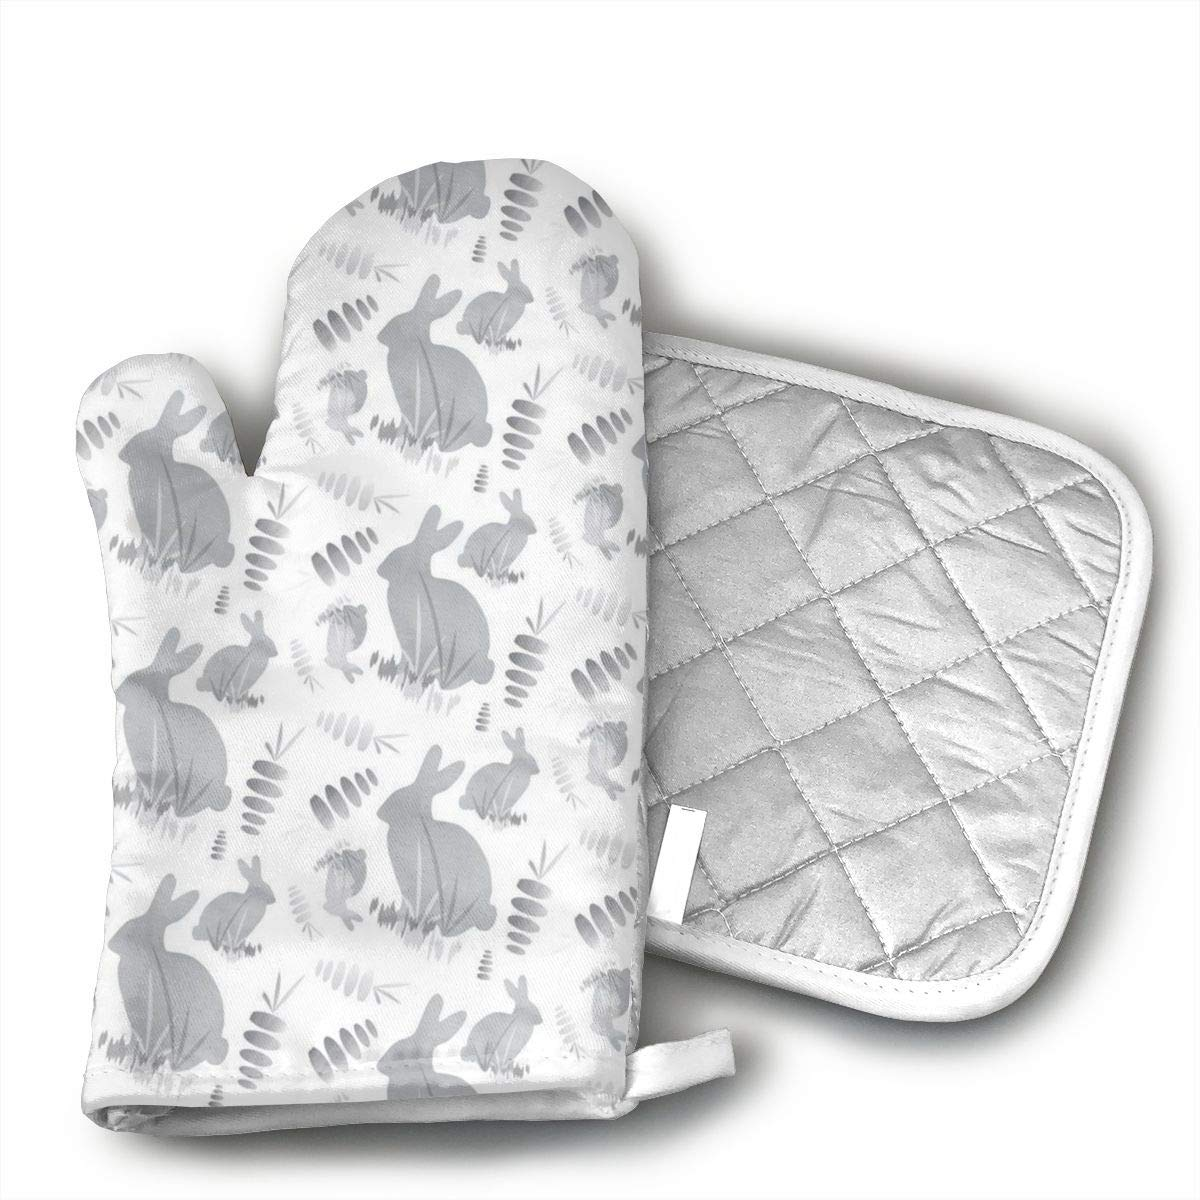 JFNNRUOP Easter Bunny Rabbit Animal Oven Mitts,with Potholders Oven Gloves,Insulated Quilted Cotton Potholders